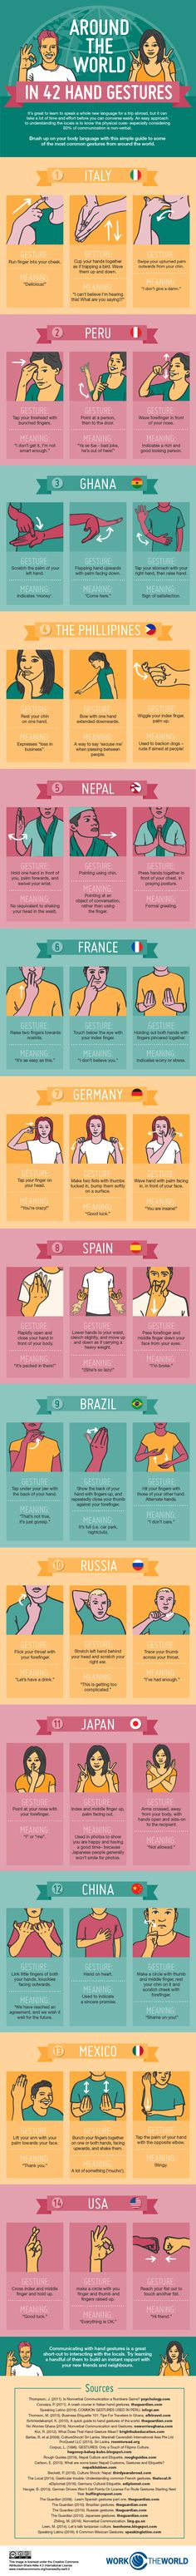 "Body Language EMBLEMS are nonverbal gestures that ""speak"" a clear message in the language of the culture.    http://holykaw.alltop.com/around-world-42-hand-gestures-infographic?gk4"